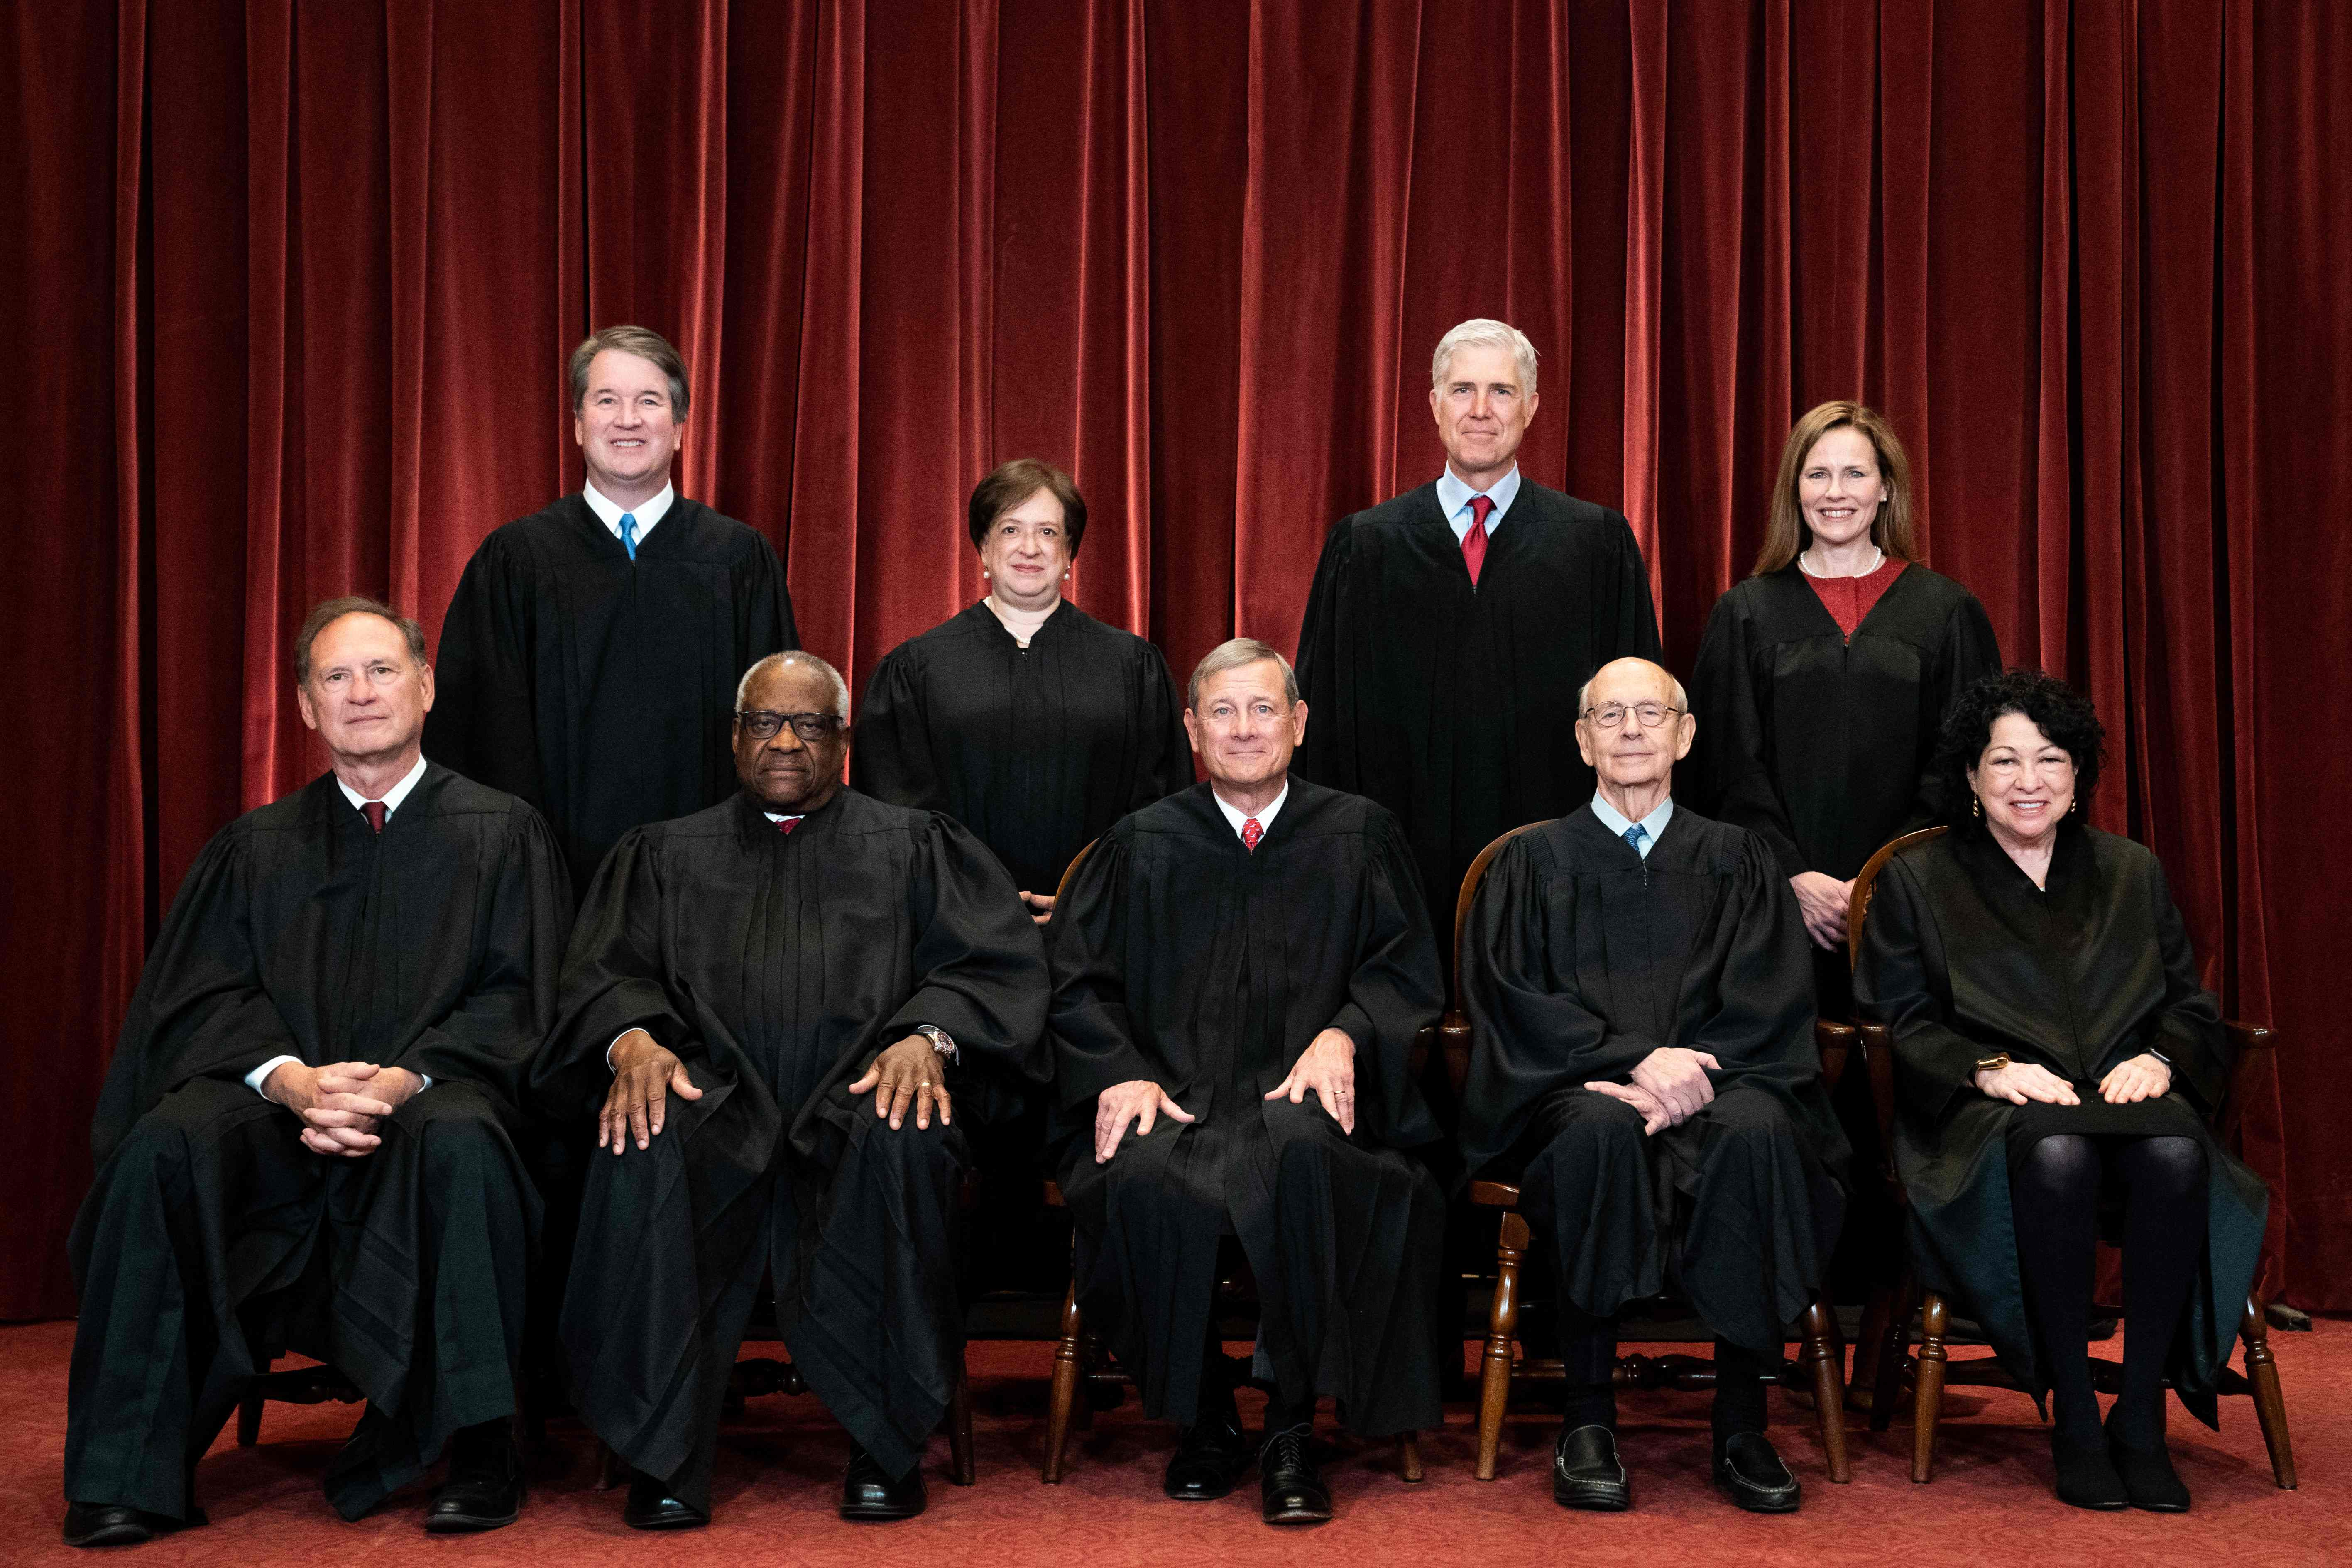 On April 23, 2021, on the Supreme Court from left: Justice Samuel Alito, Justice Brett Kavanaugh, Justice Clarence Thomas, Justice Elena Kagan, Chief Justice John Roberts, Justice Neil Gorsuch, Justice Stephen Breyer, Justice Amy Coney Barrett and Justice Sonia Sotomayor.